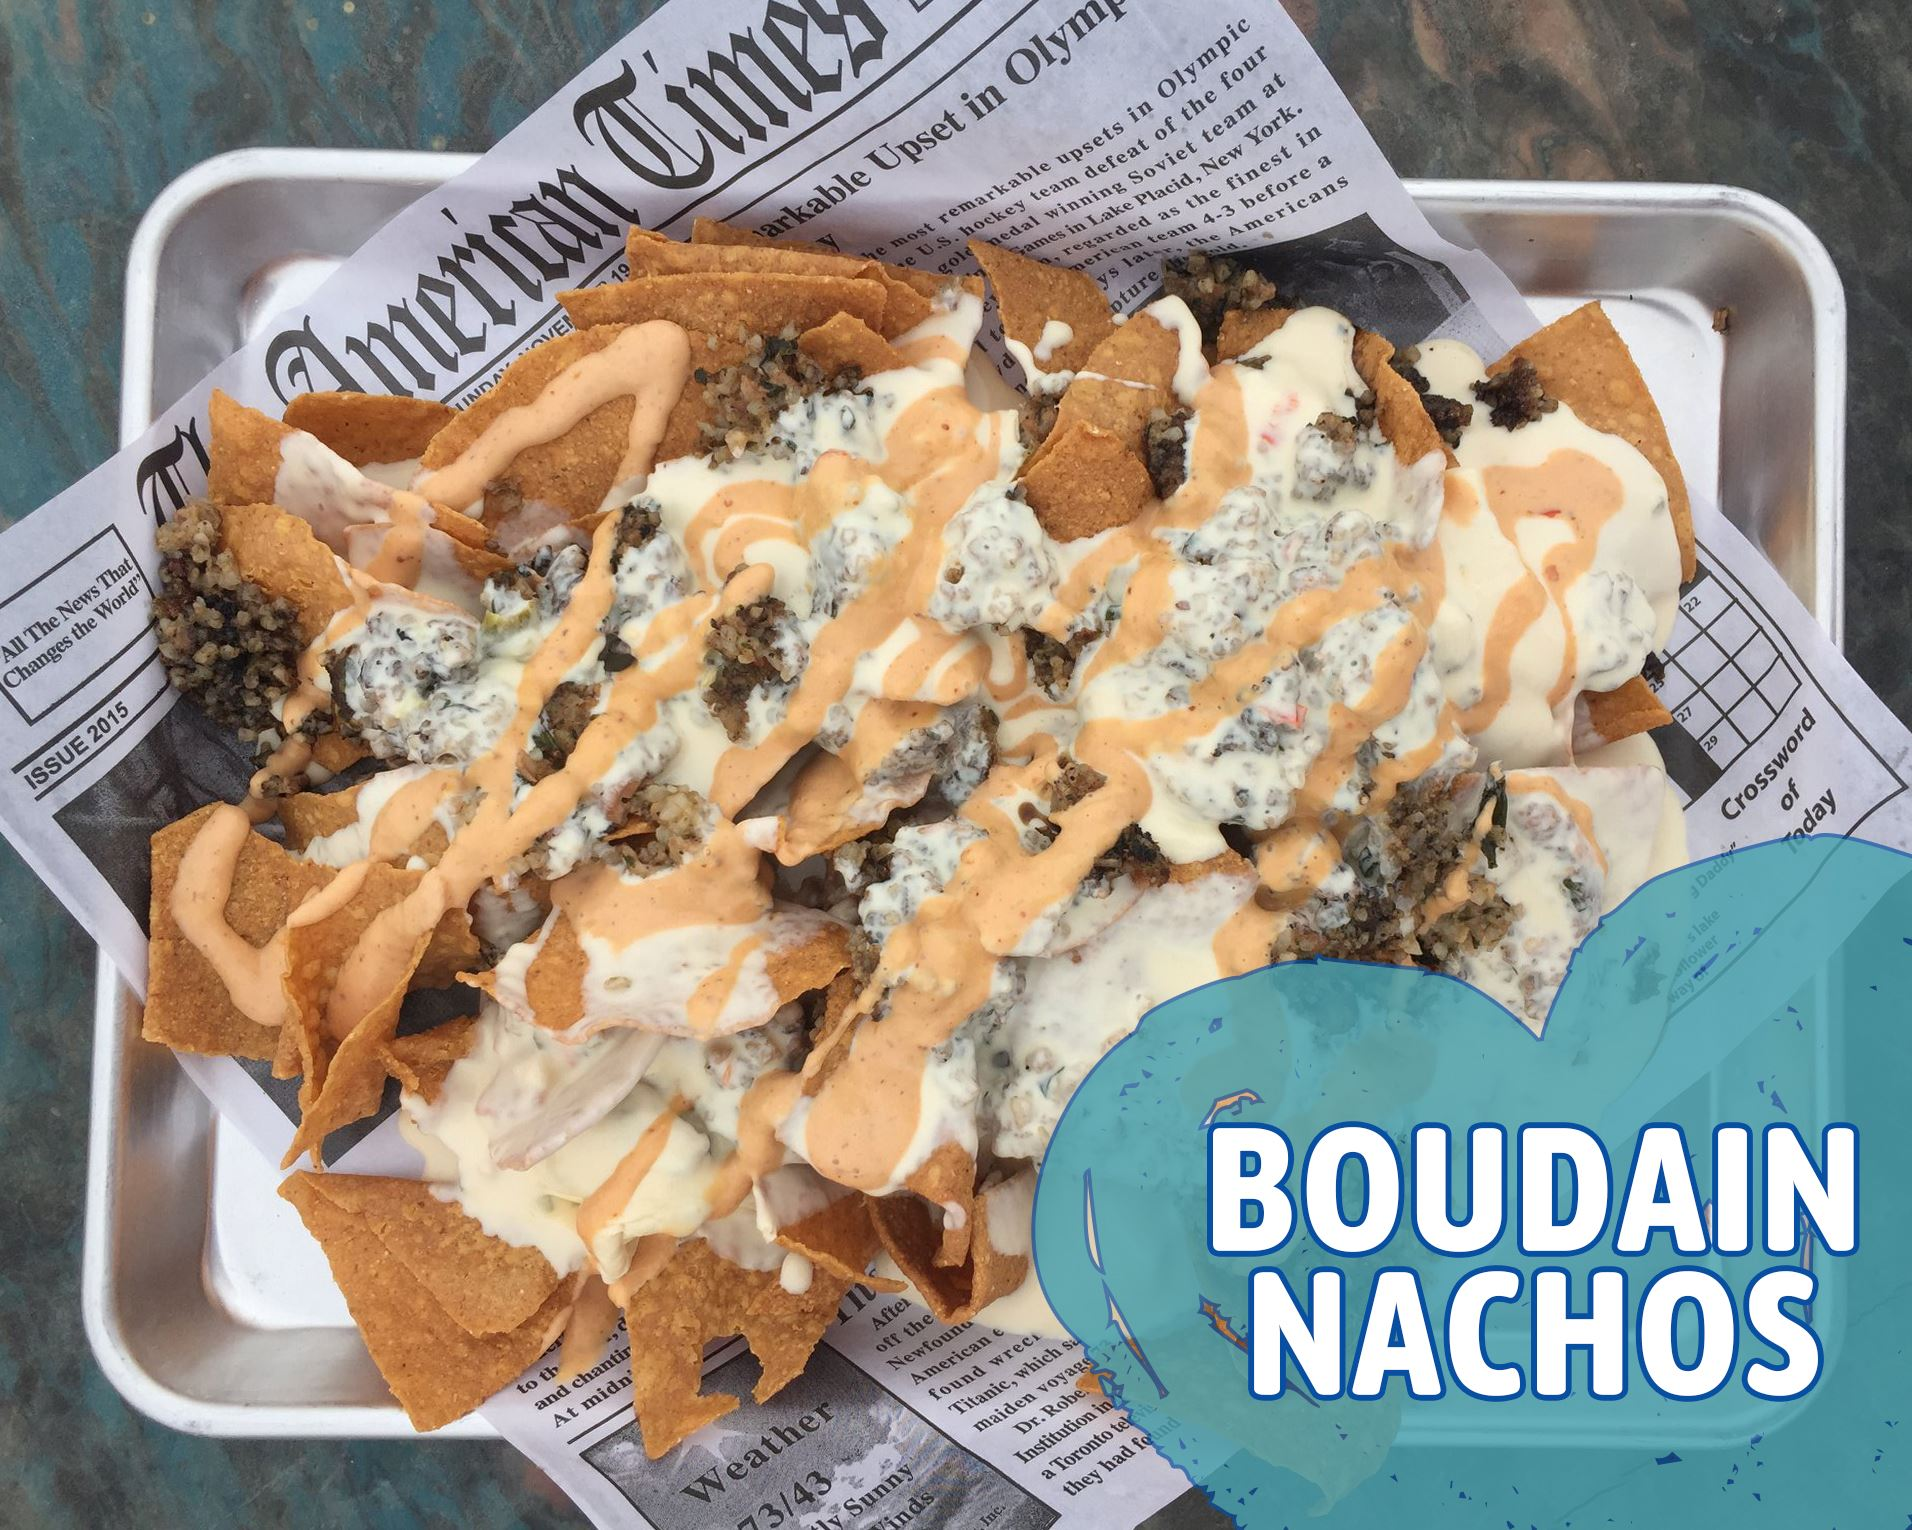 Boudain Nachos Opens in new window